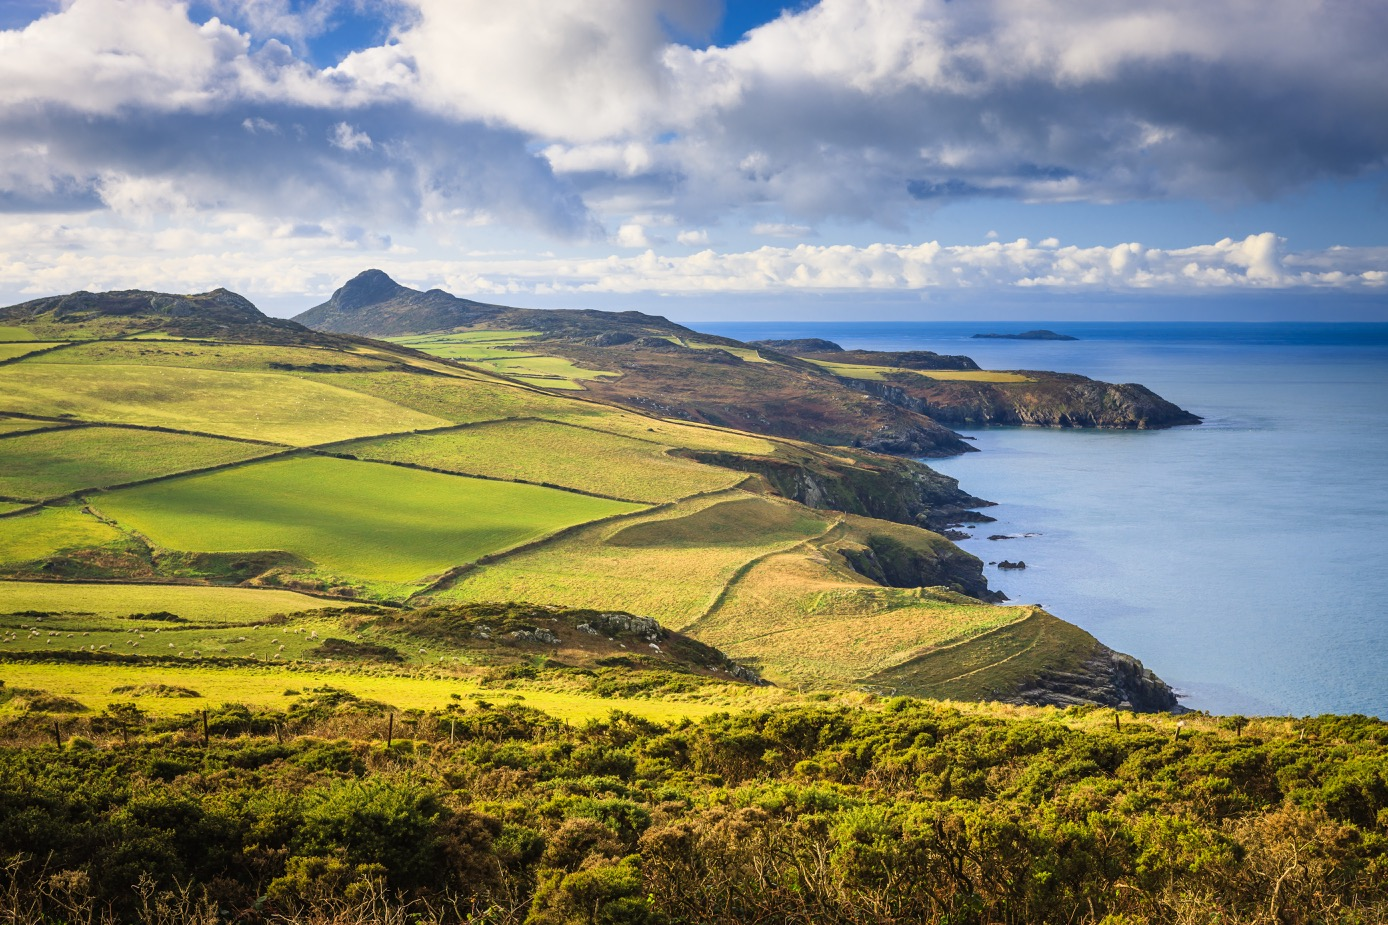 Photograph of the Pembrokeshire Coast looking south from Penberi towards St David's Head.